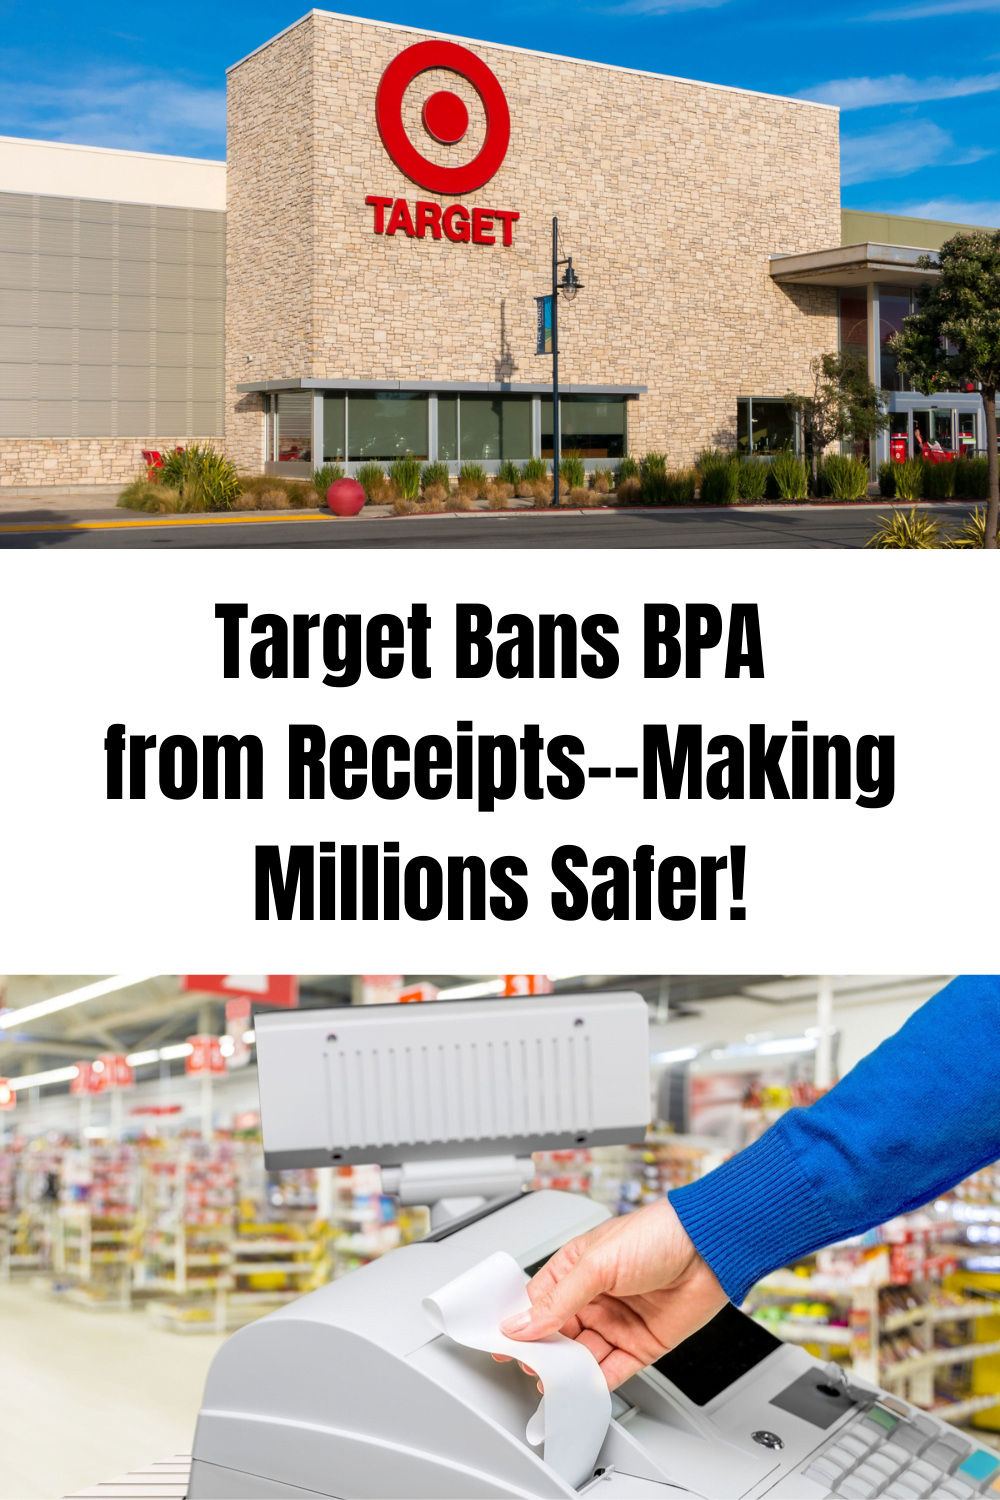 VICTORY! Target Bans BPA from Receipts Making Millions Safer!